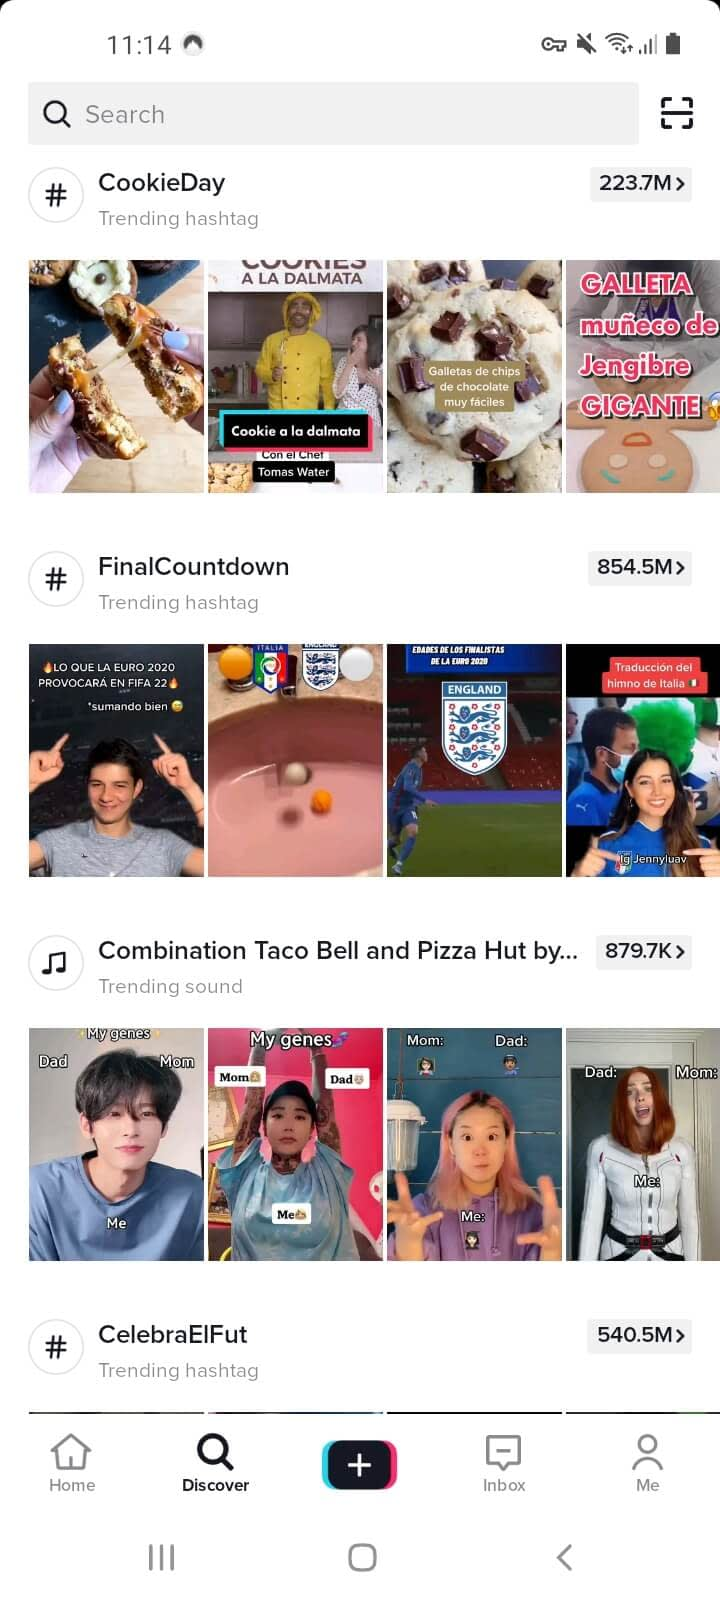 The TikTok discover page is full of TikTok content ideas that resonate with audiences.